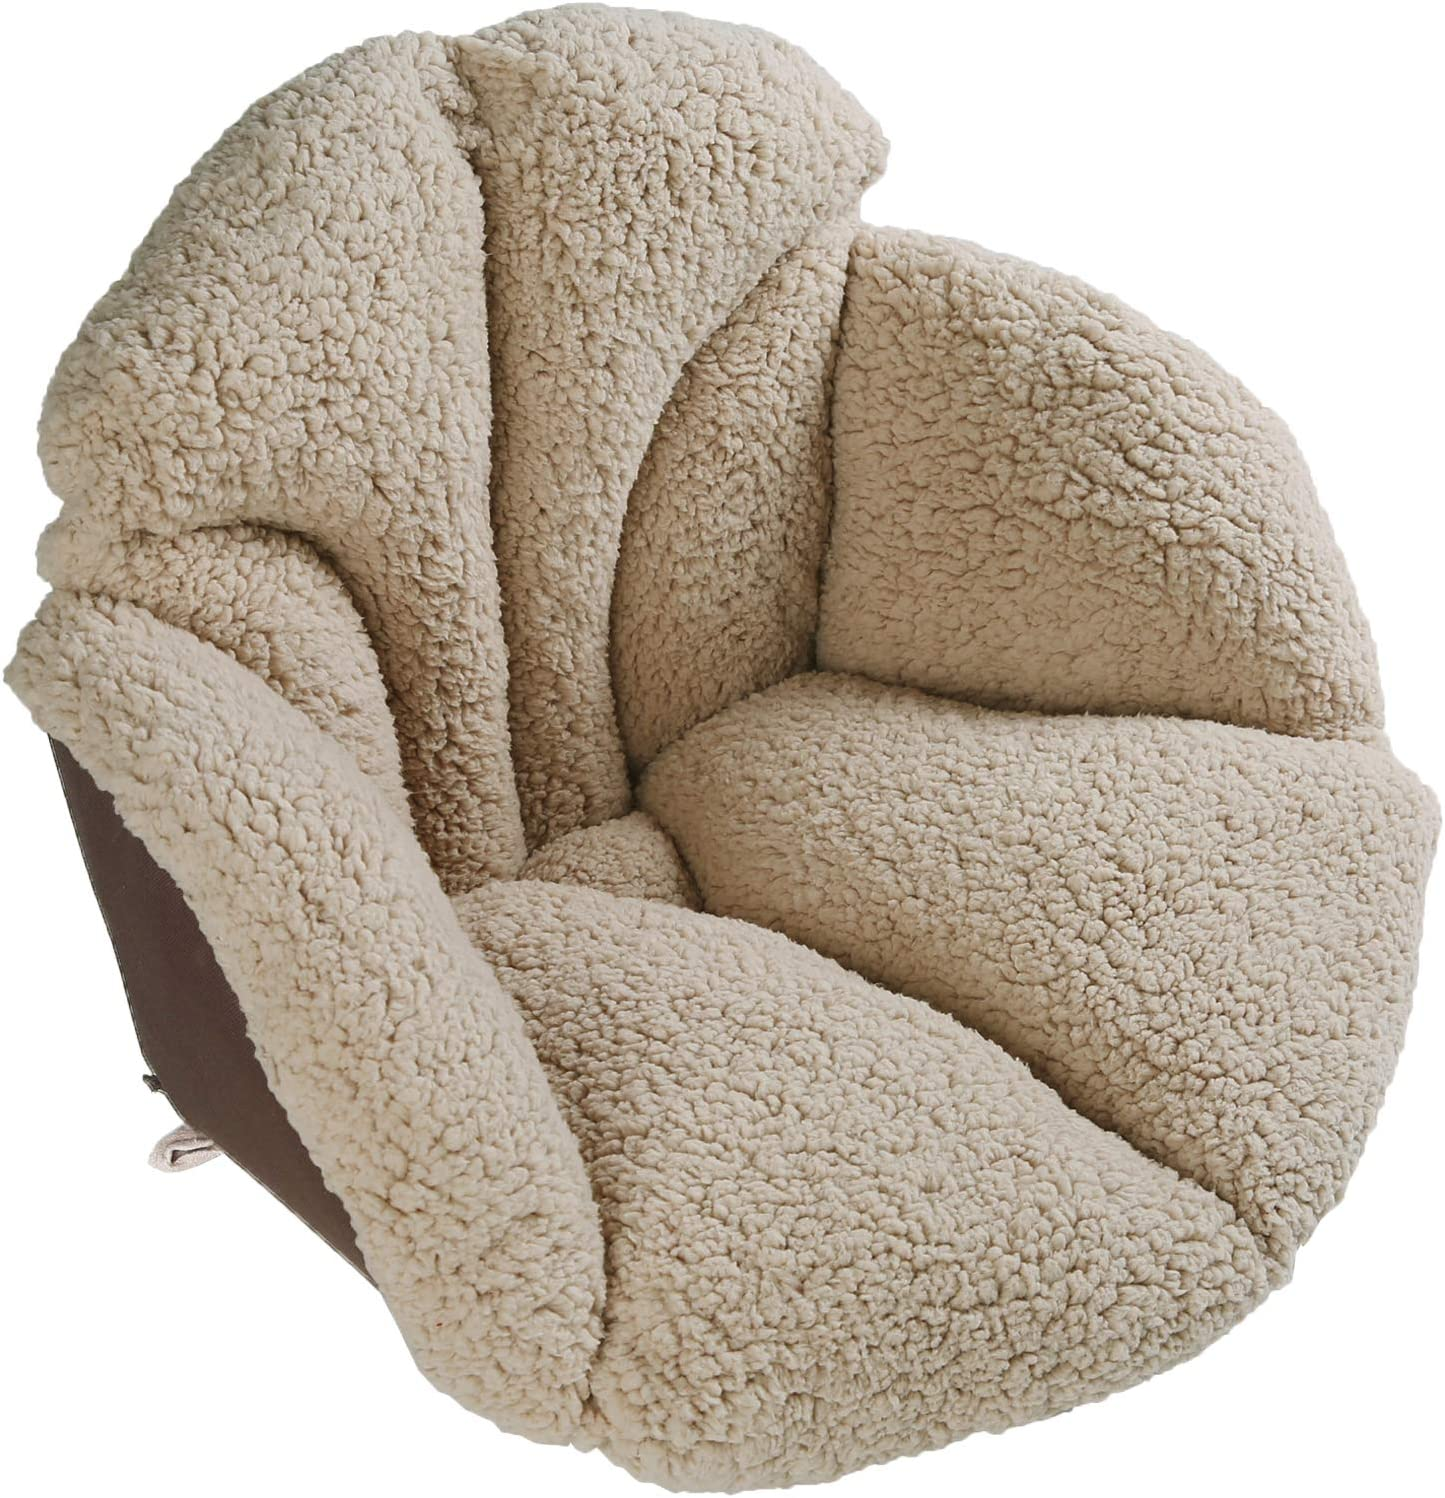 Amazon Com Hughapy Chair Cushions Desk Seat Cushion Warm Comfort Sherpa Wool Seat Cushion Pad For Support Waist Backrest Winter Plush Cushion For Home Office Chair Car Seat 19wx16lx15h Khaki Kitchen Dining